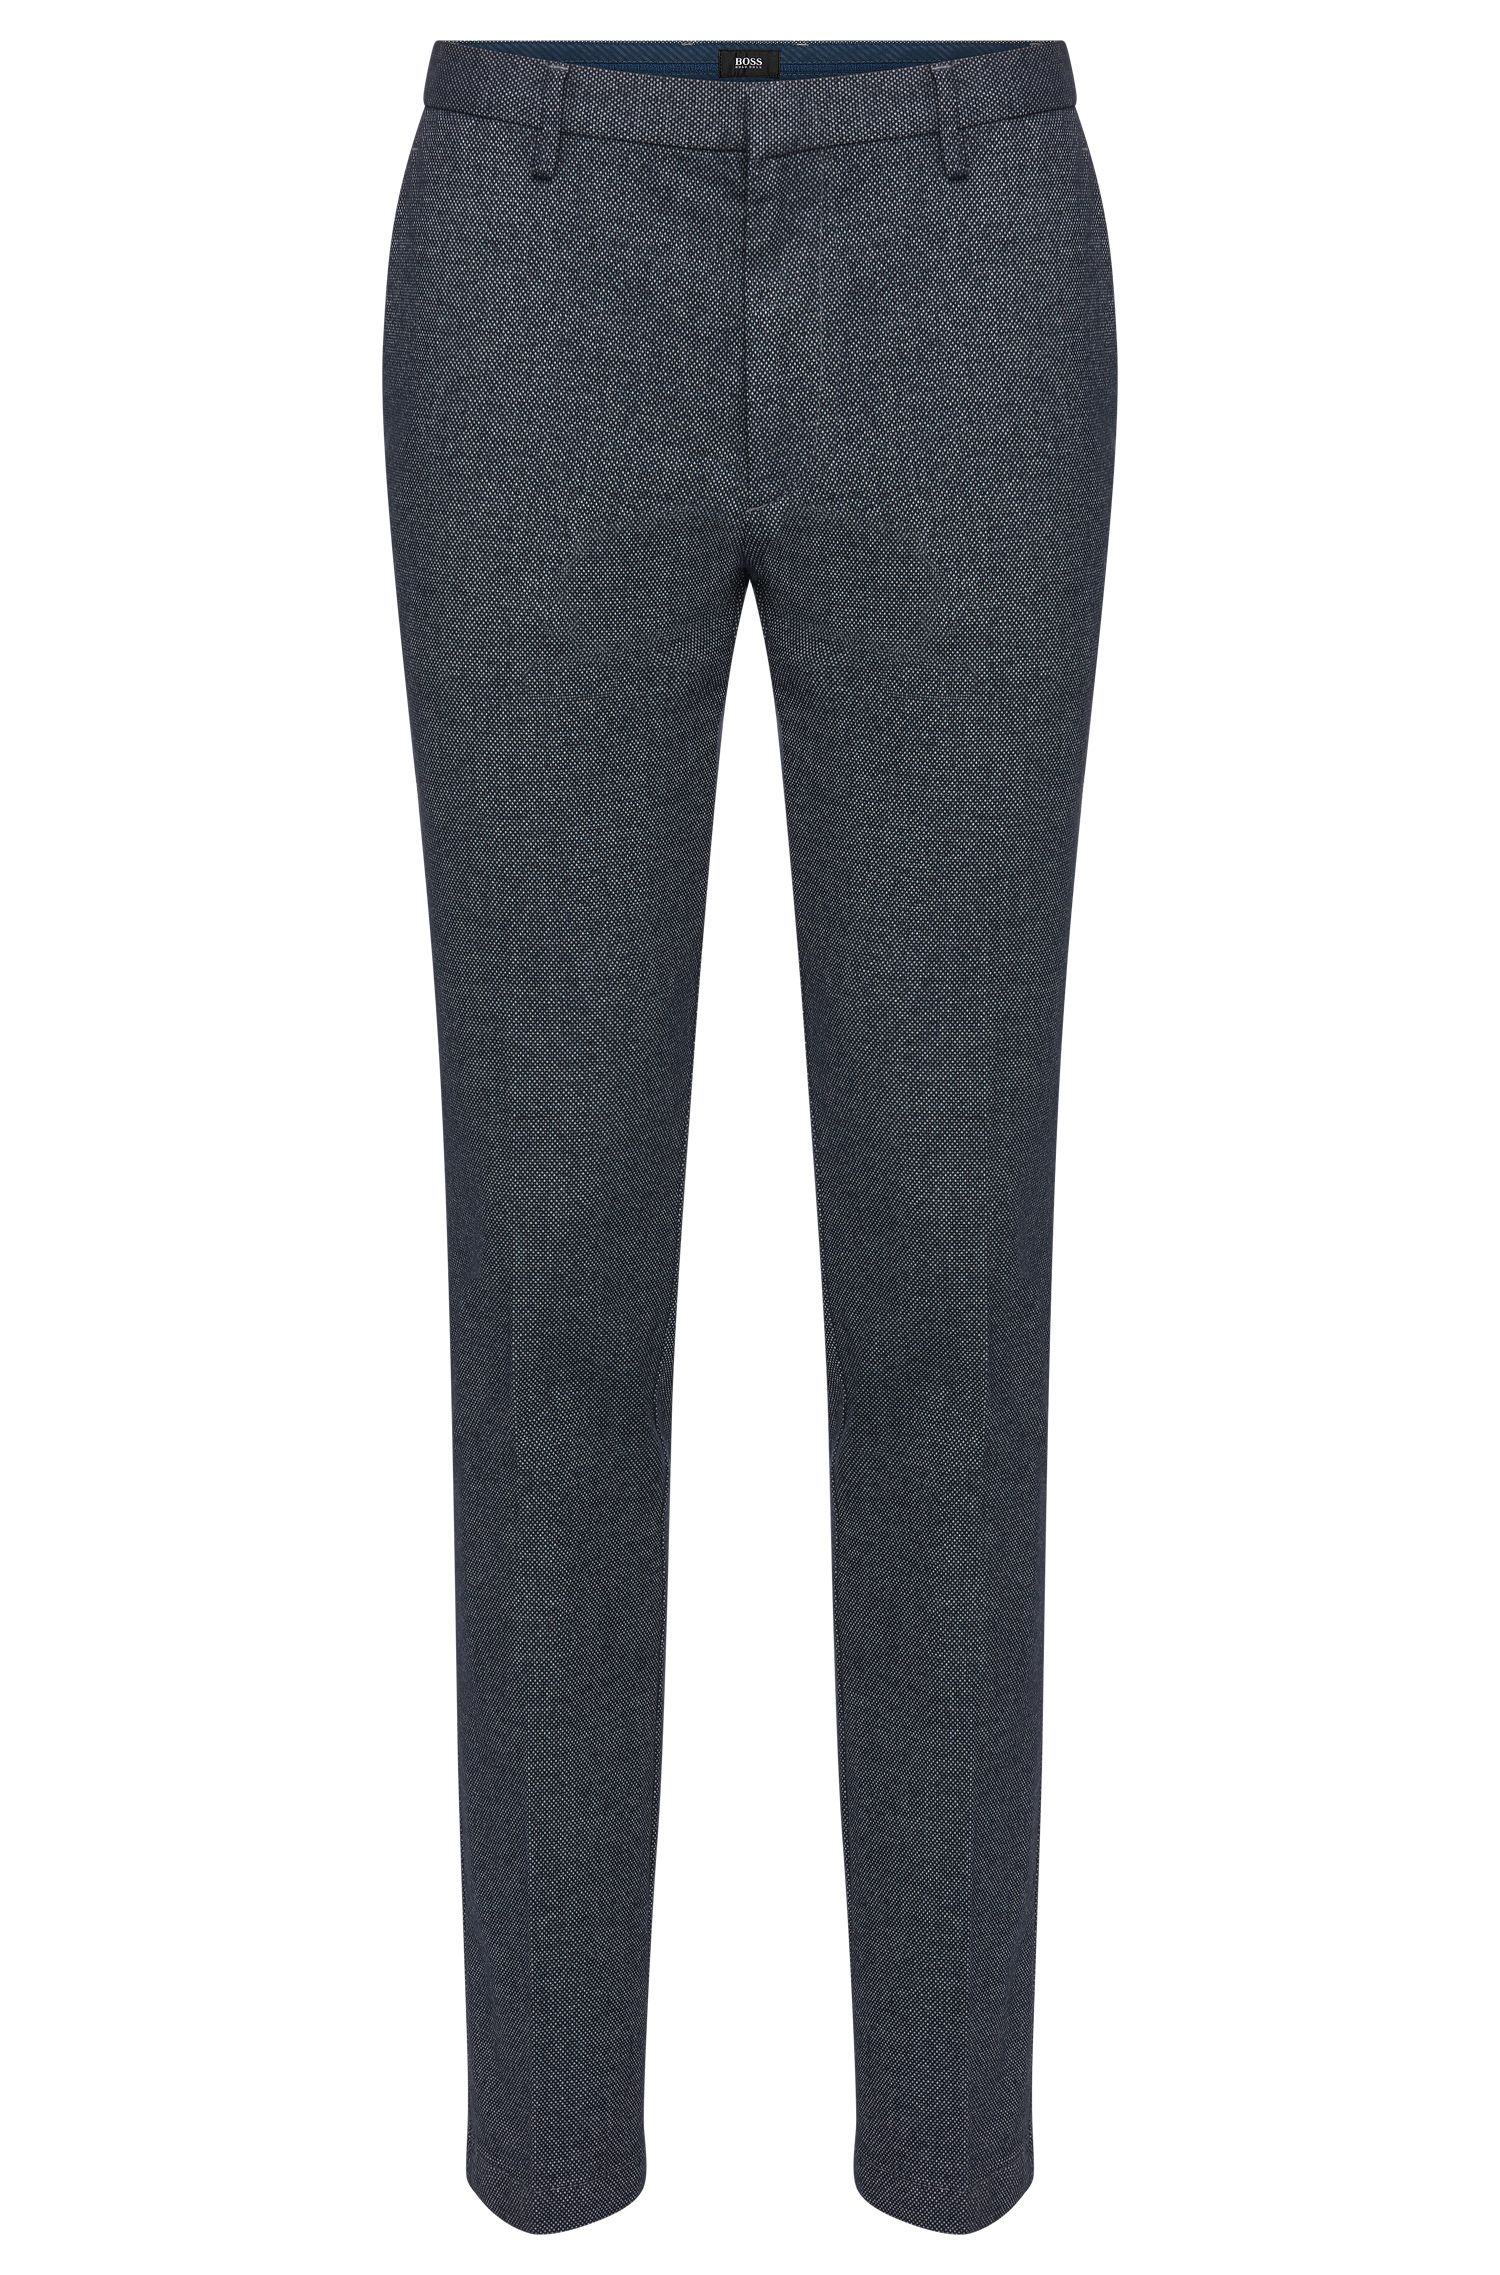 'Kaito-W' | Extra Slim Fit, Stretch Cotton Blend Patterned Pants